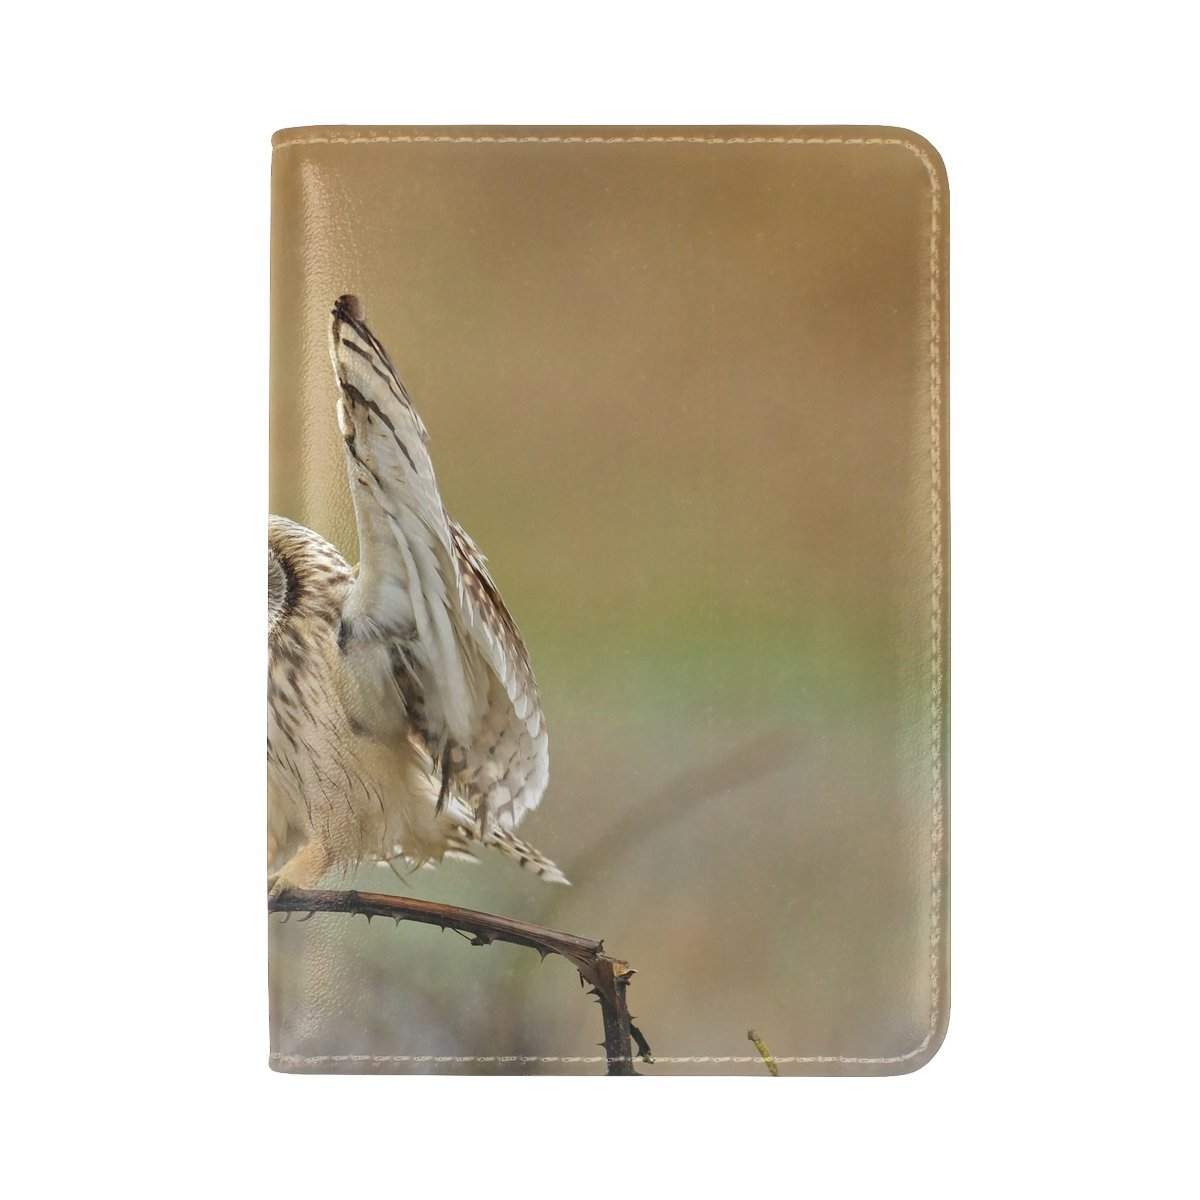 Animal Owl Short-eared Lonely Amazing Amazing Tree Gorgeous Nature Leather Passport Holder Cover Case Travel One Pocket